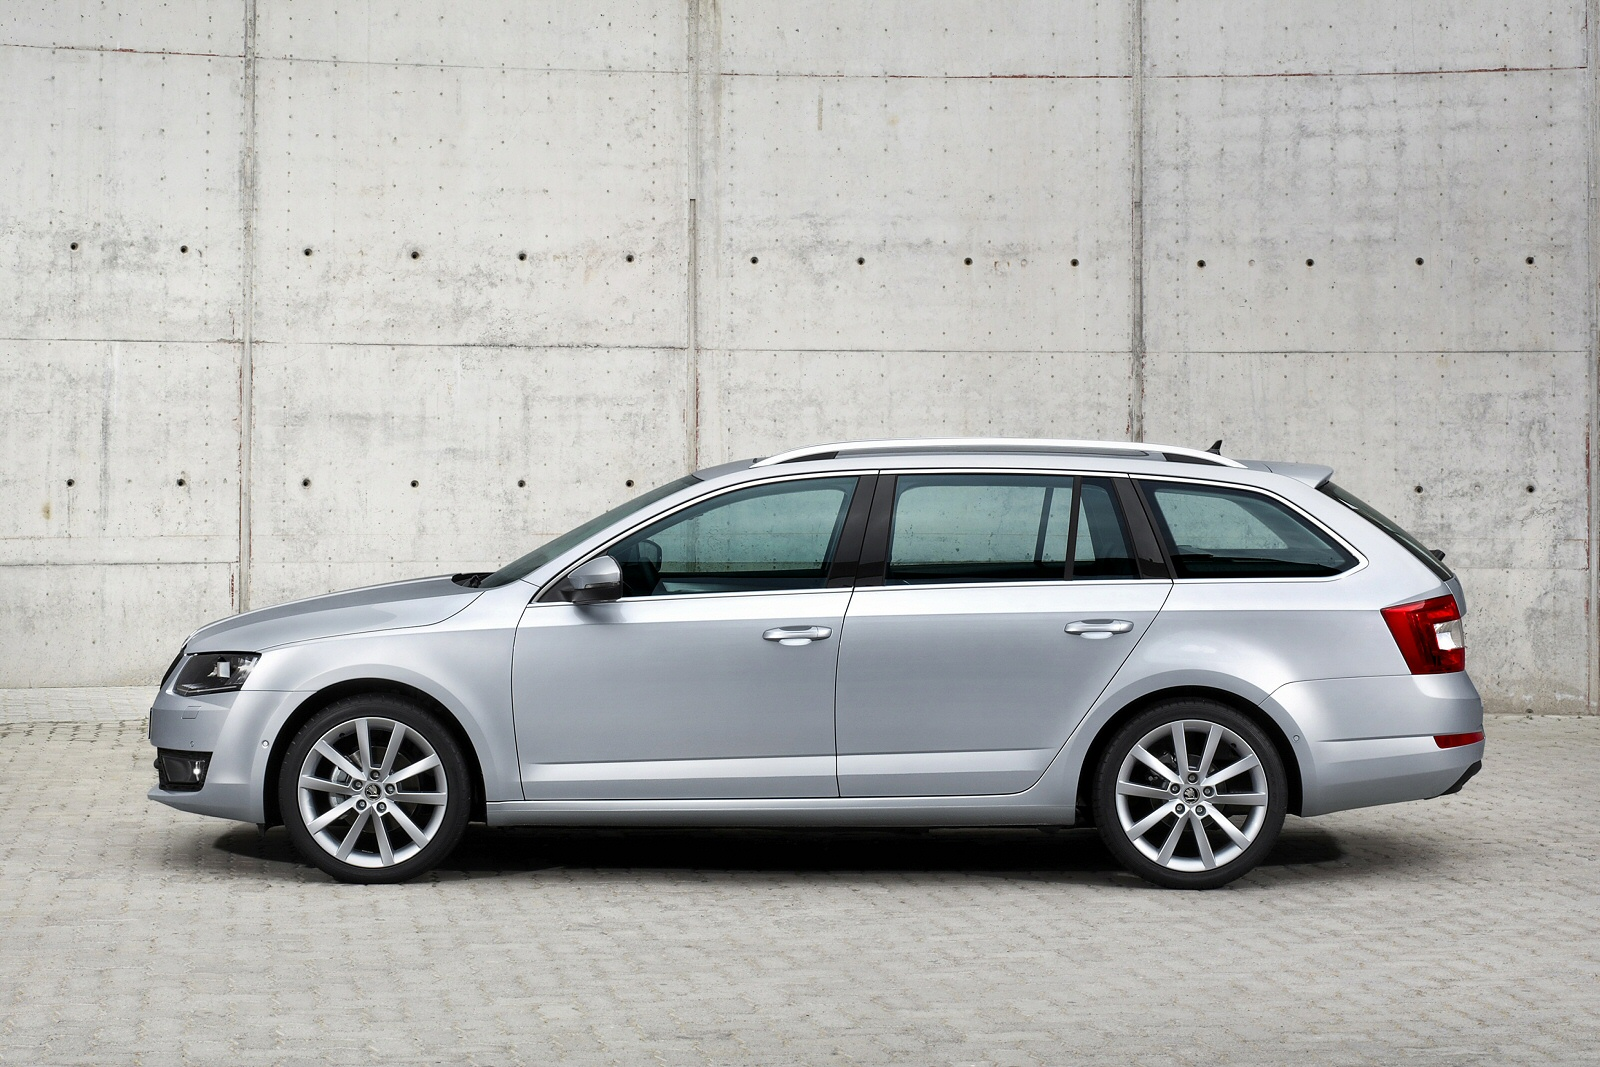 Image two of a Skoda Octavia Estate